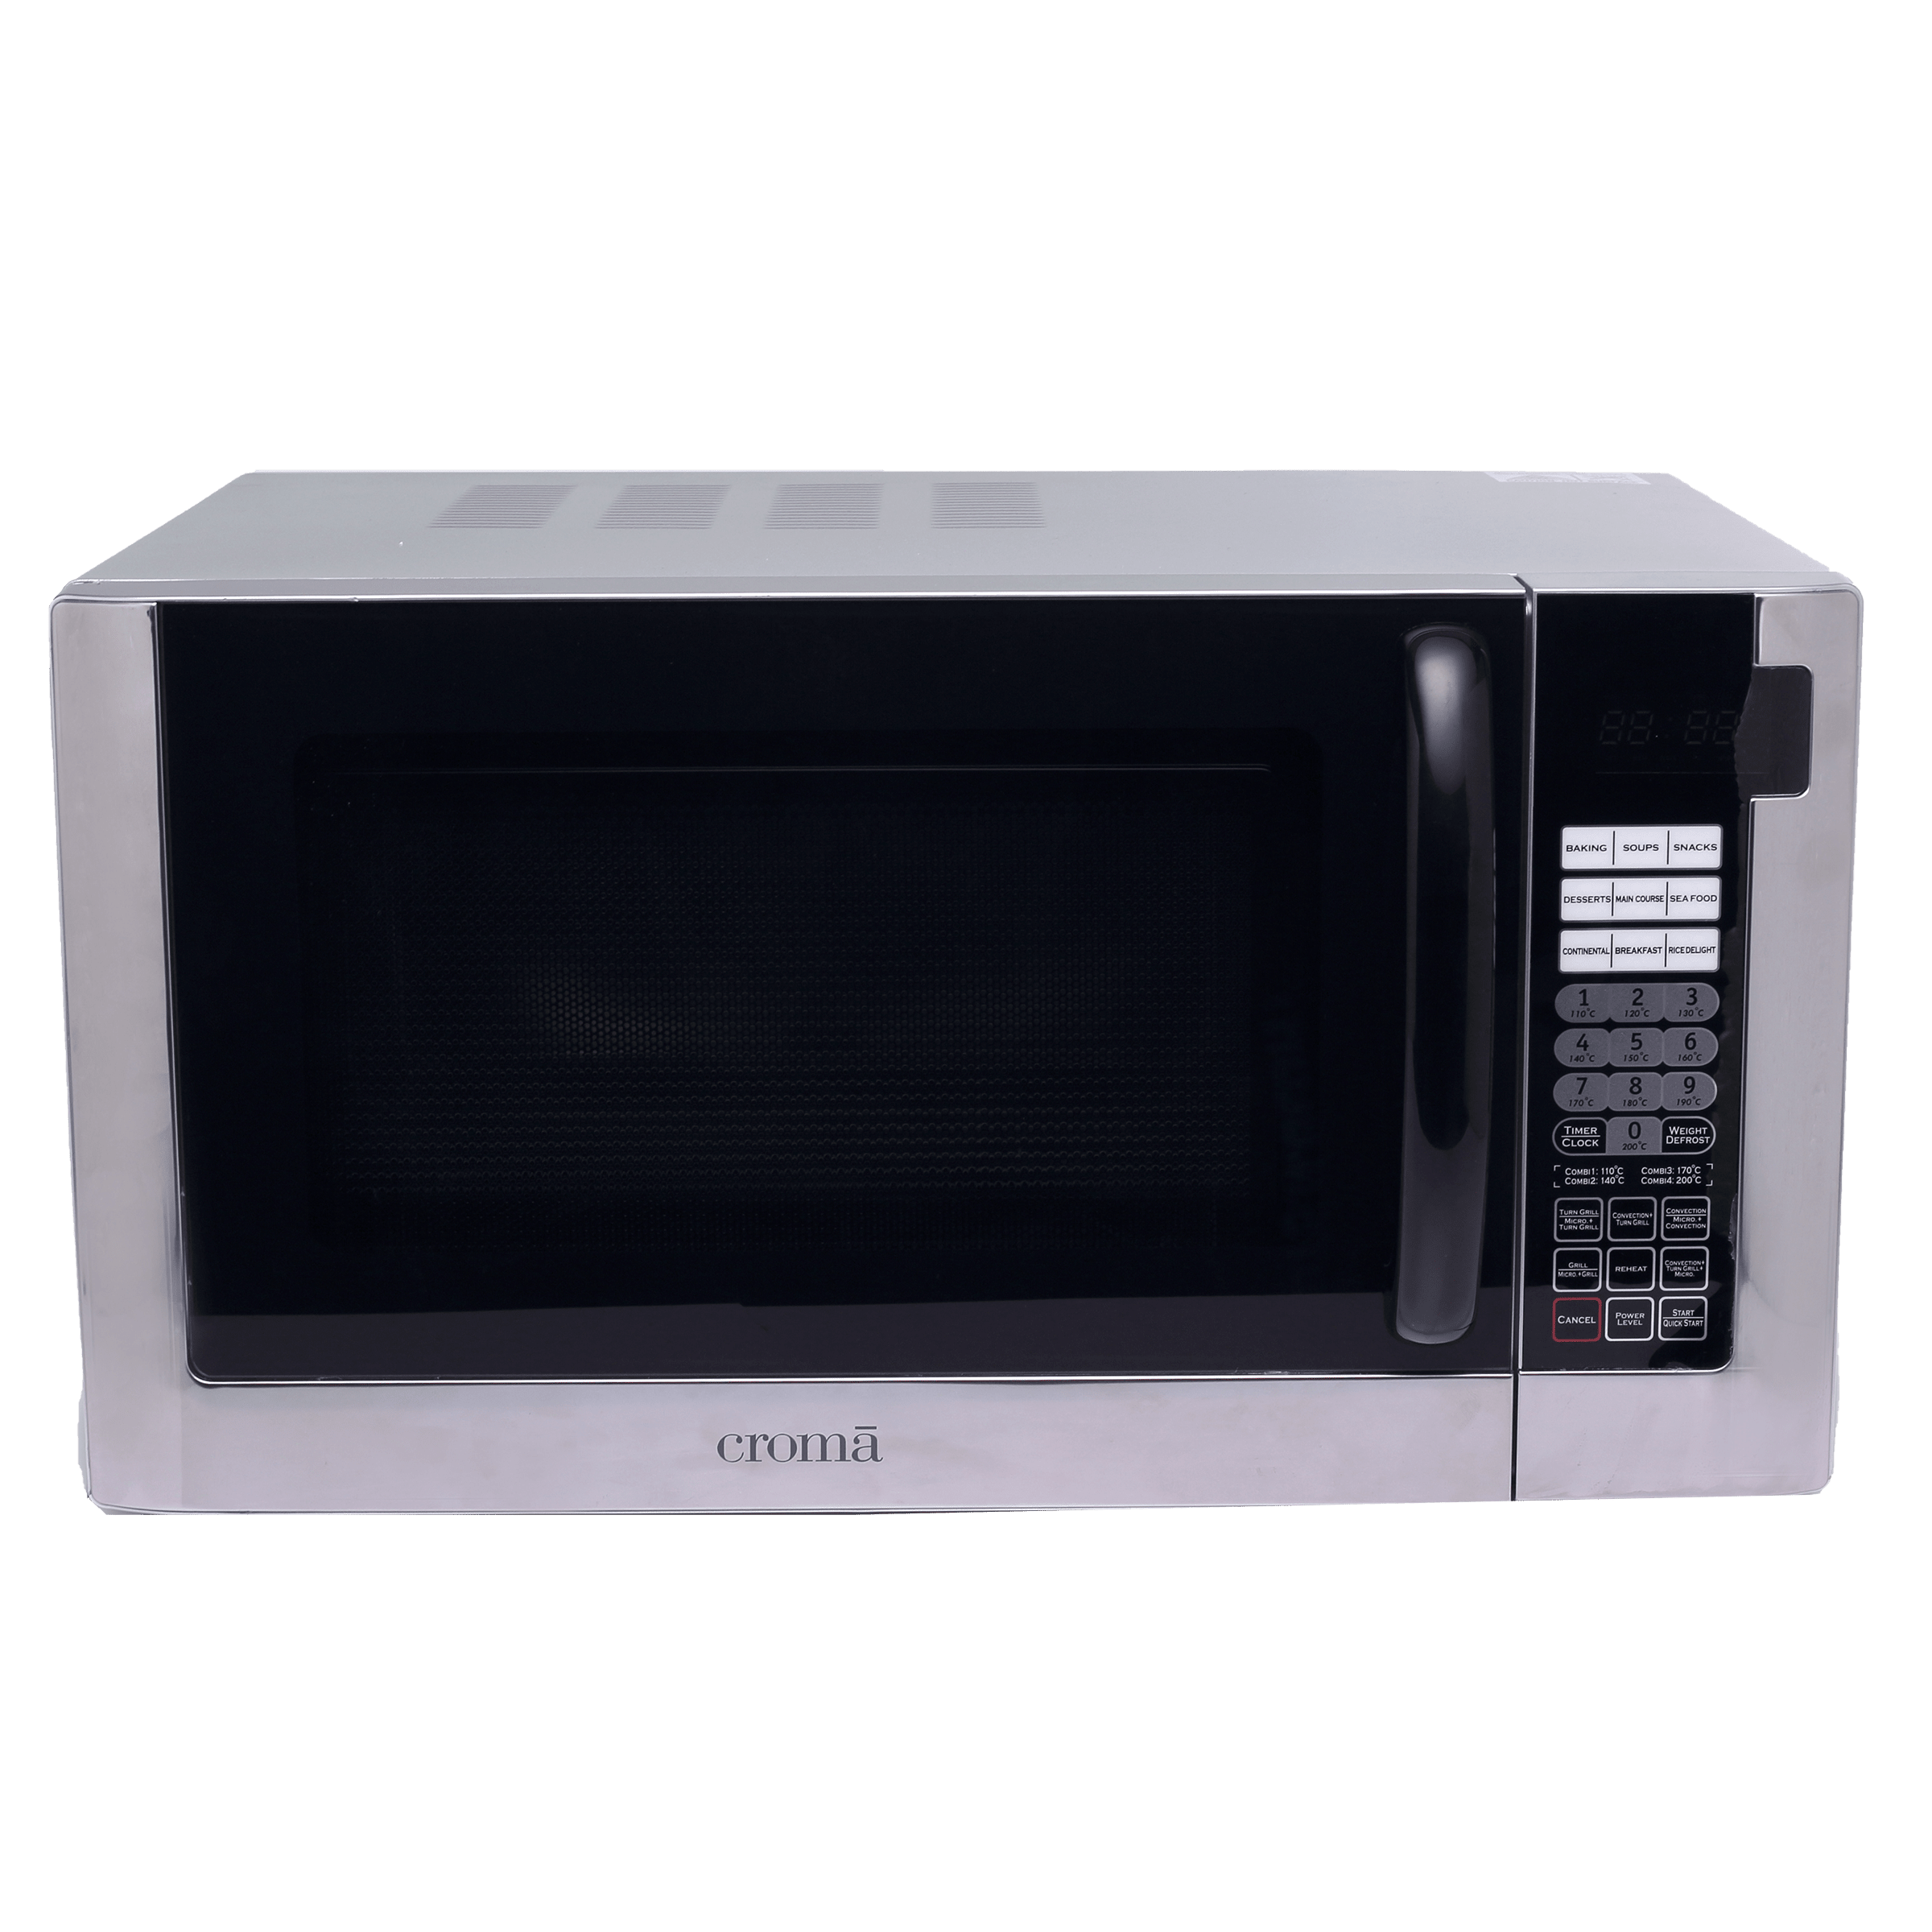 Croma CRAM0192 30 Litres Convection Microwave Oven (Black)